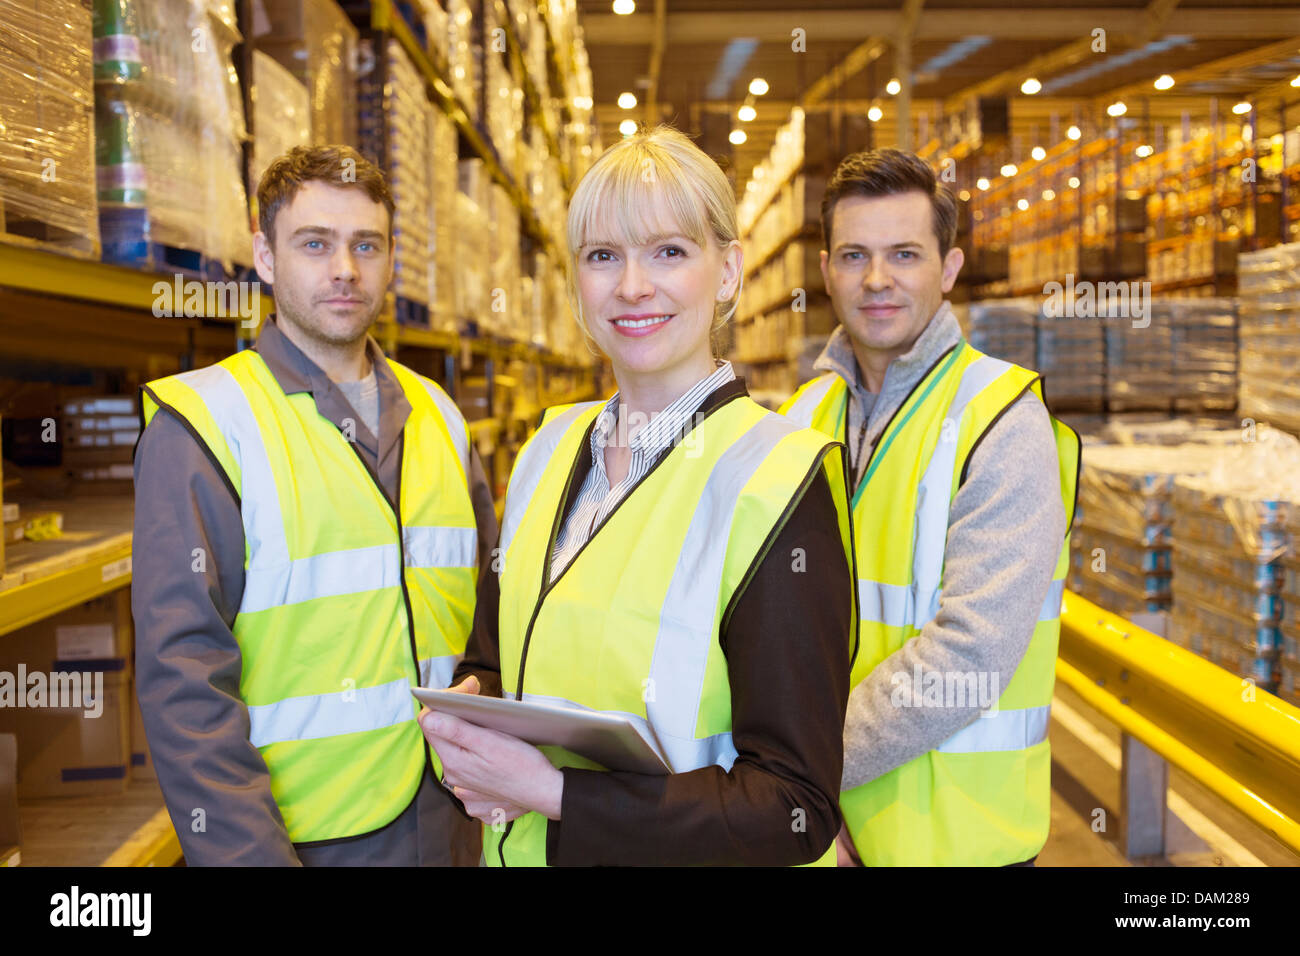 Businesswoman and workers smiling in warehouse Stock Photo